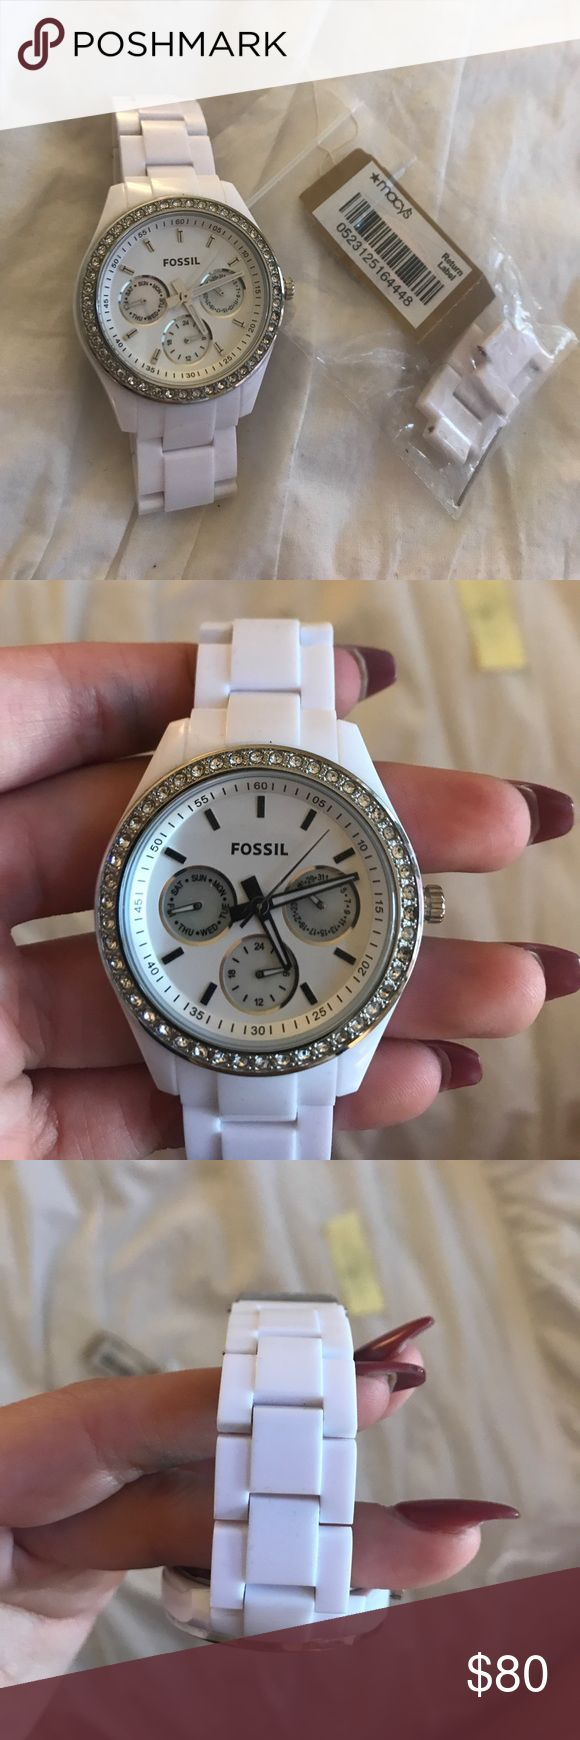 White Fossil Watch This Watch is in almost perfect condition, the only flaw is as seen in the last picture- slight scratching on back Fossil clamp. Batteries still work. Price is firm bc of condition & working function. Includes all extra pieces to make larger. Fossil Accessories Watches